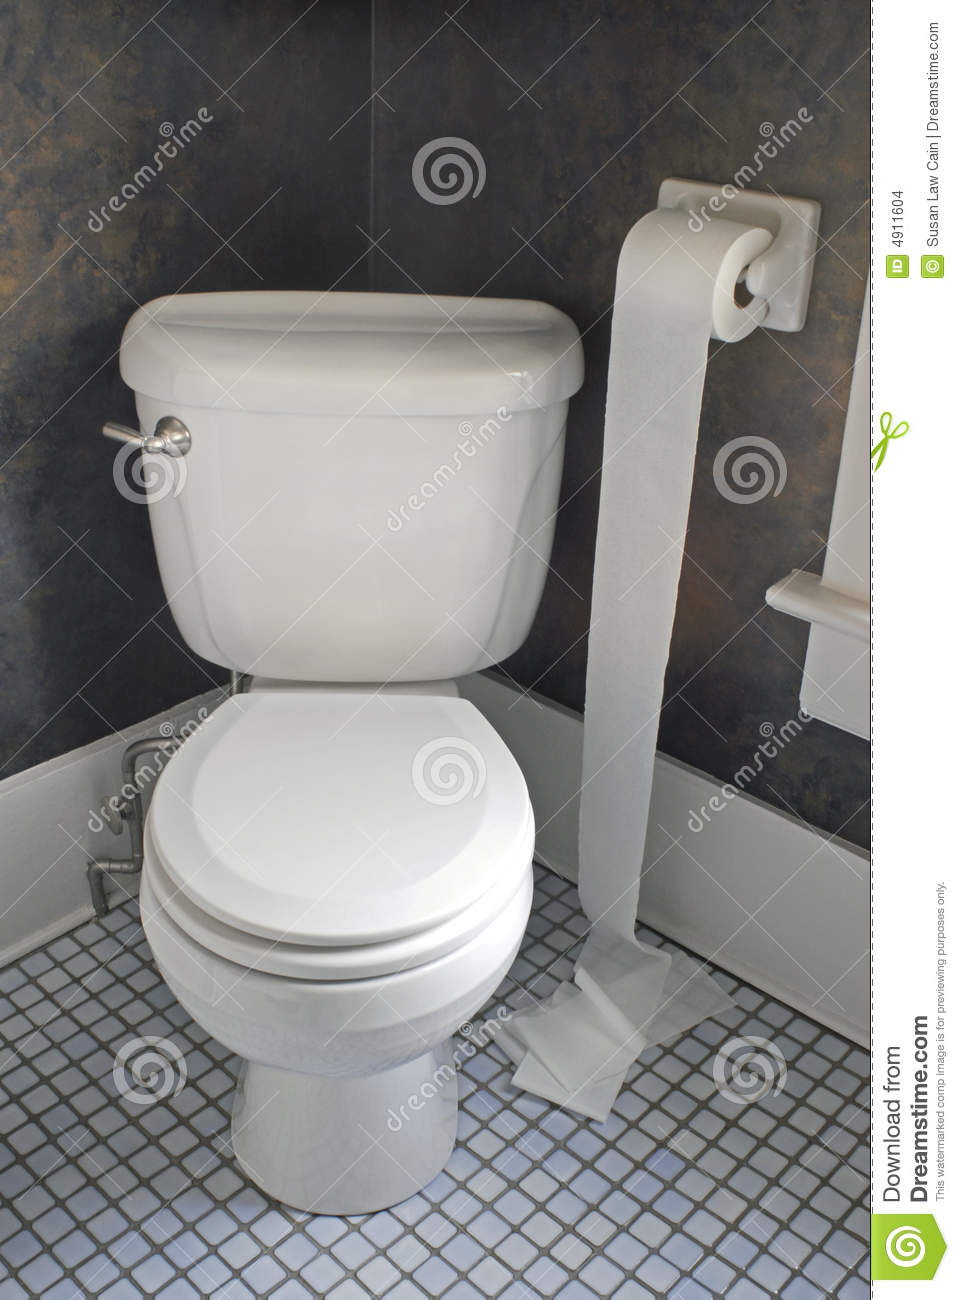 Toilet With Paper On Floor Stock Photo Image Of Health